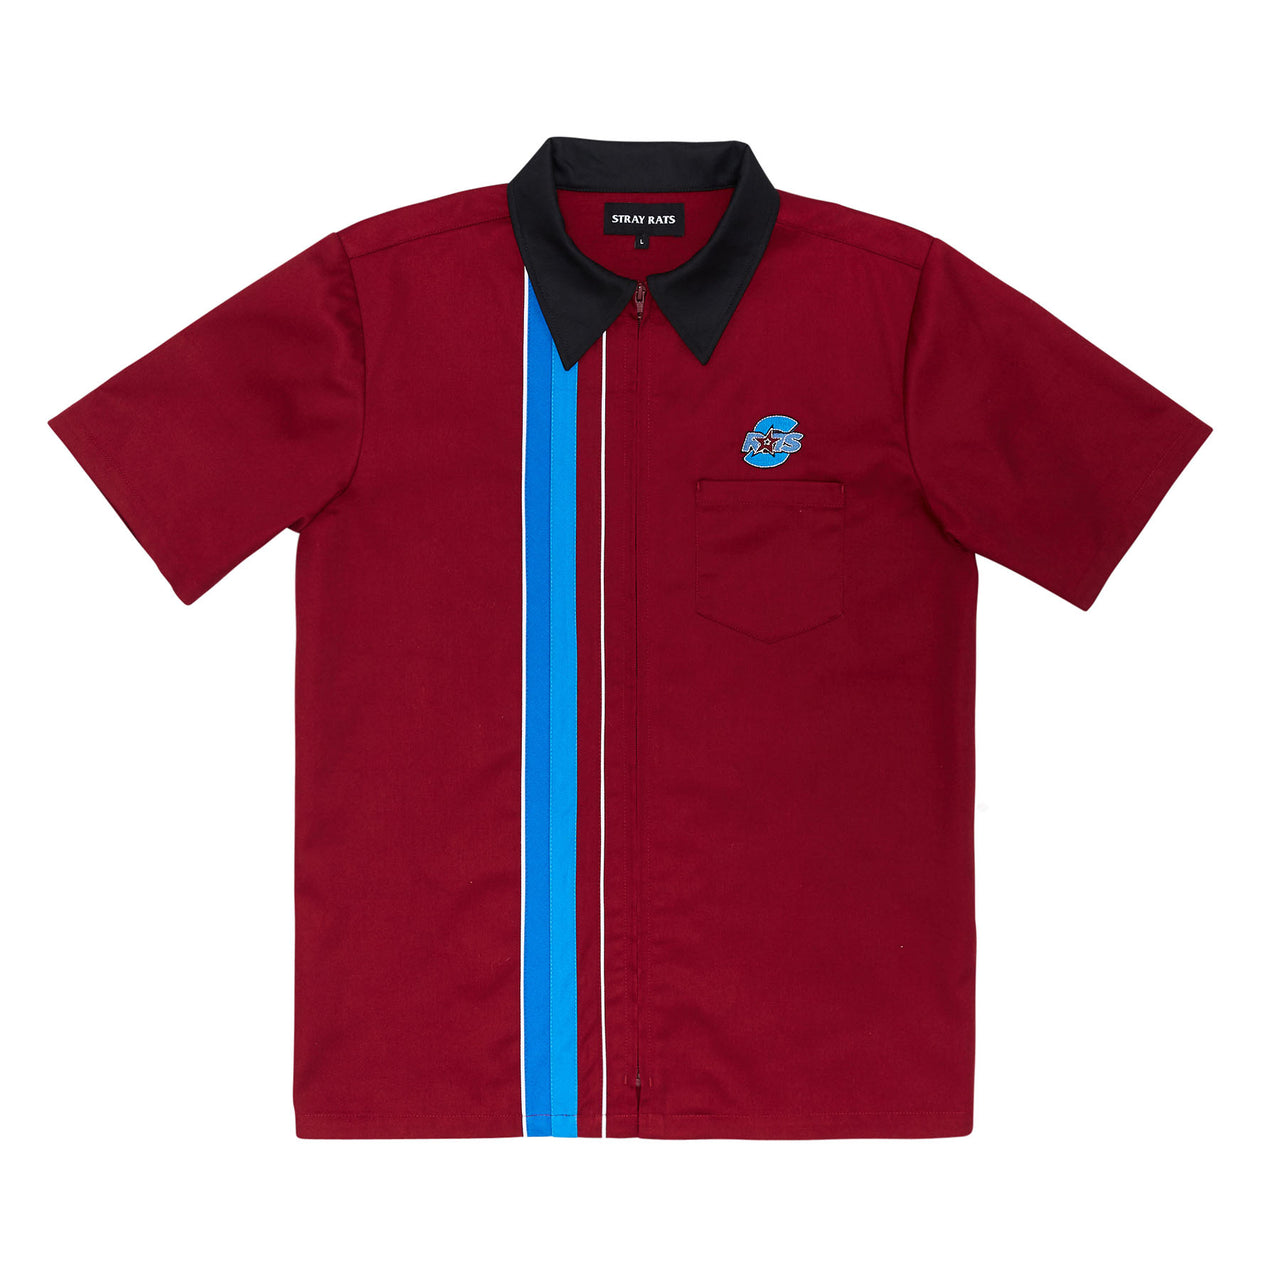 Zip Work Shirt (Maroon)